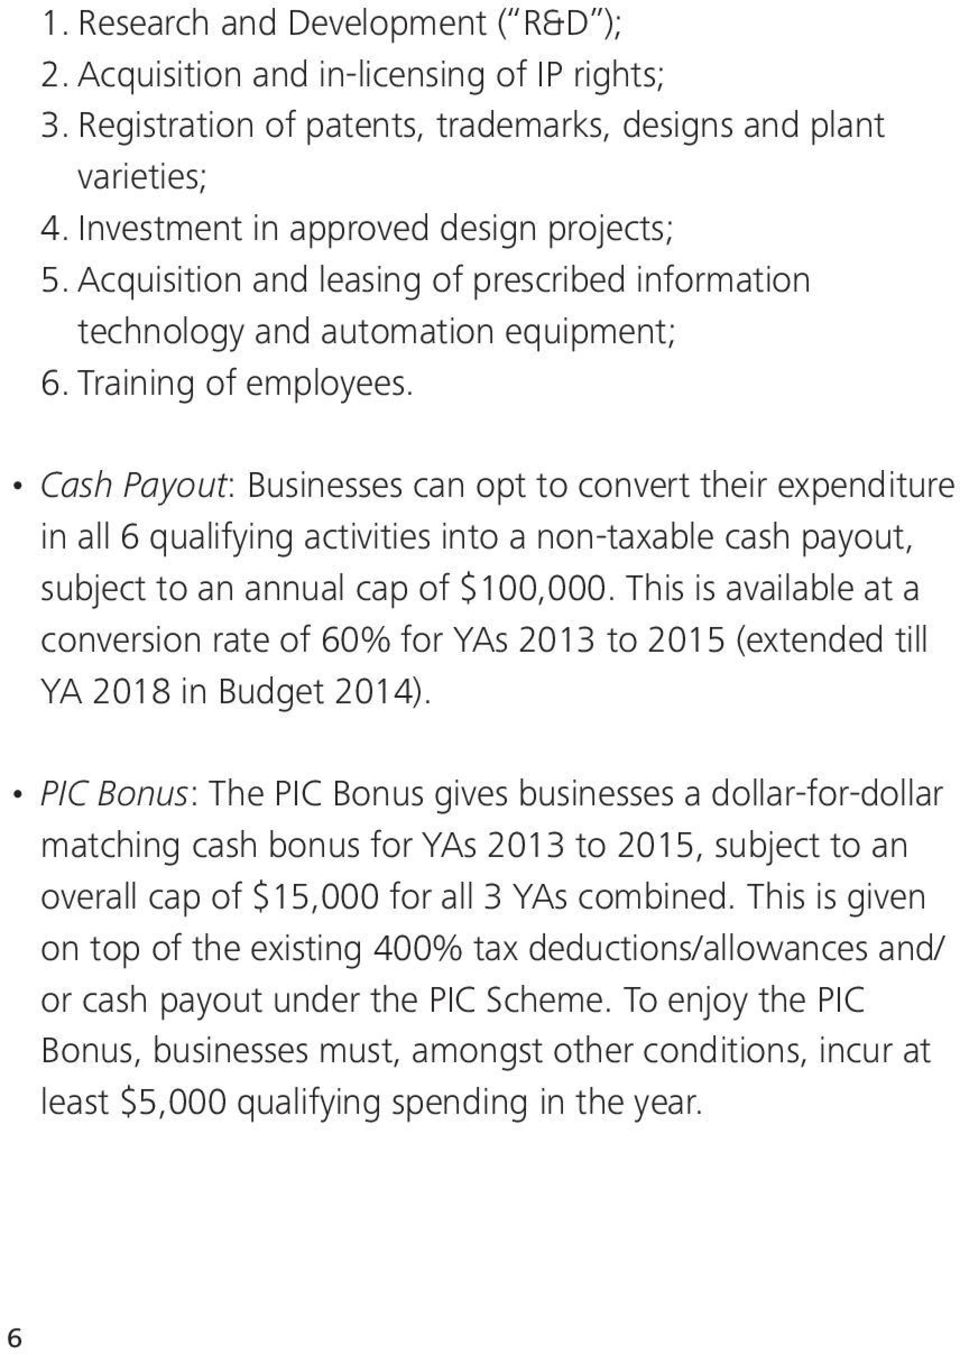 Cash Payout: Businesses can opt to convert their expenditure in all 6 qualifying activities into a non-taxable cash payout, subject to an annual cap of $100,000.